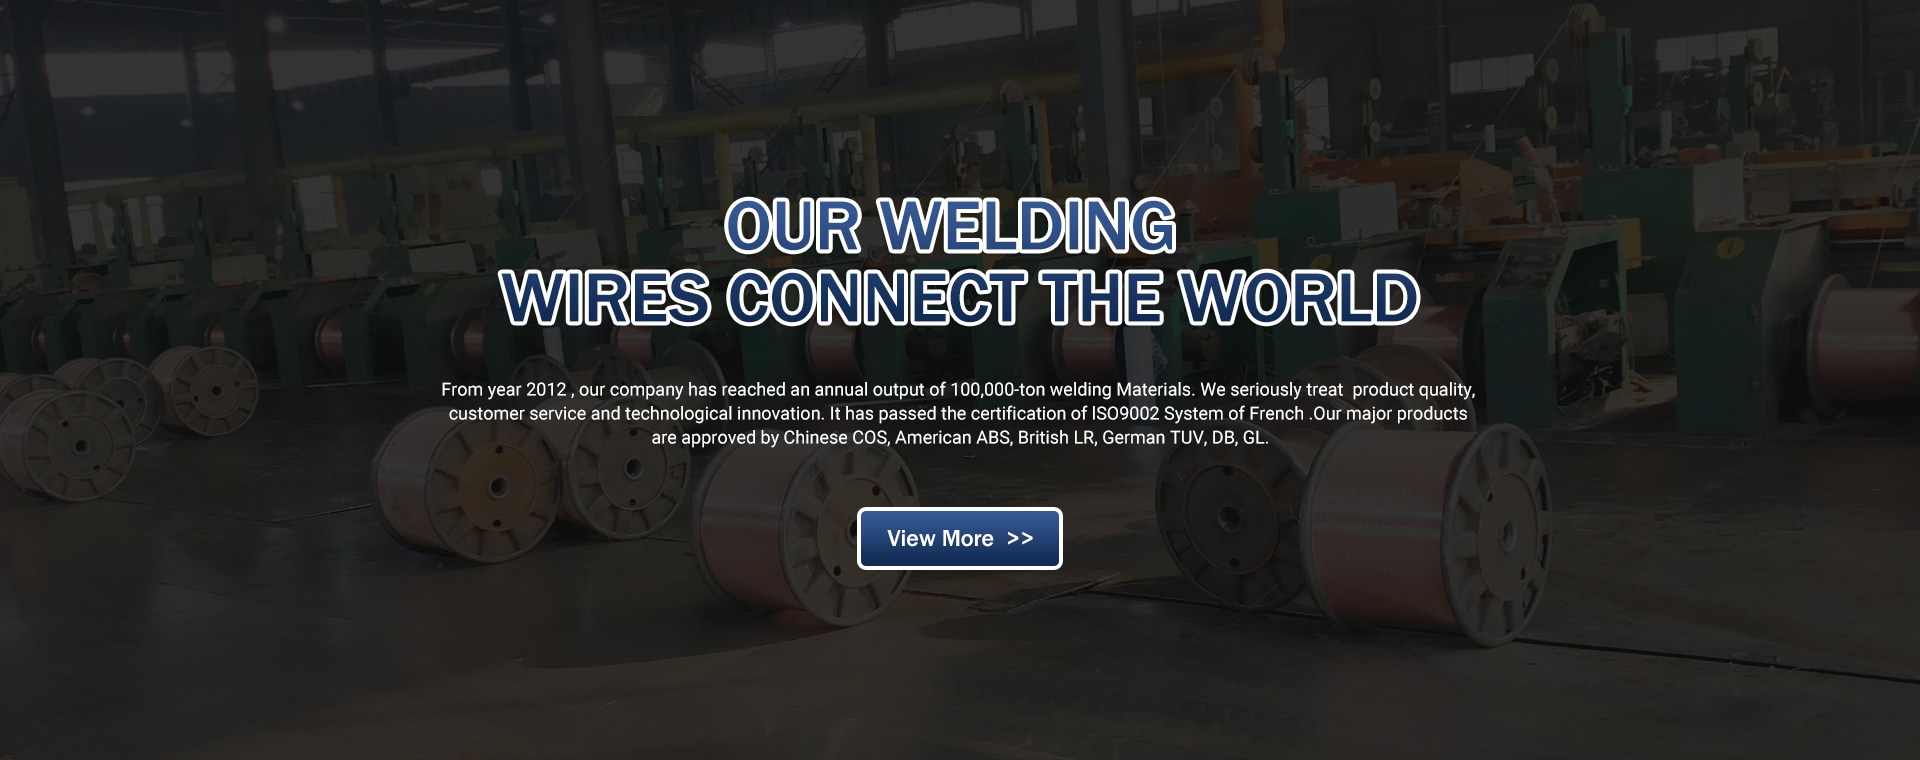 FLUX-CORED WELDING WIRES